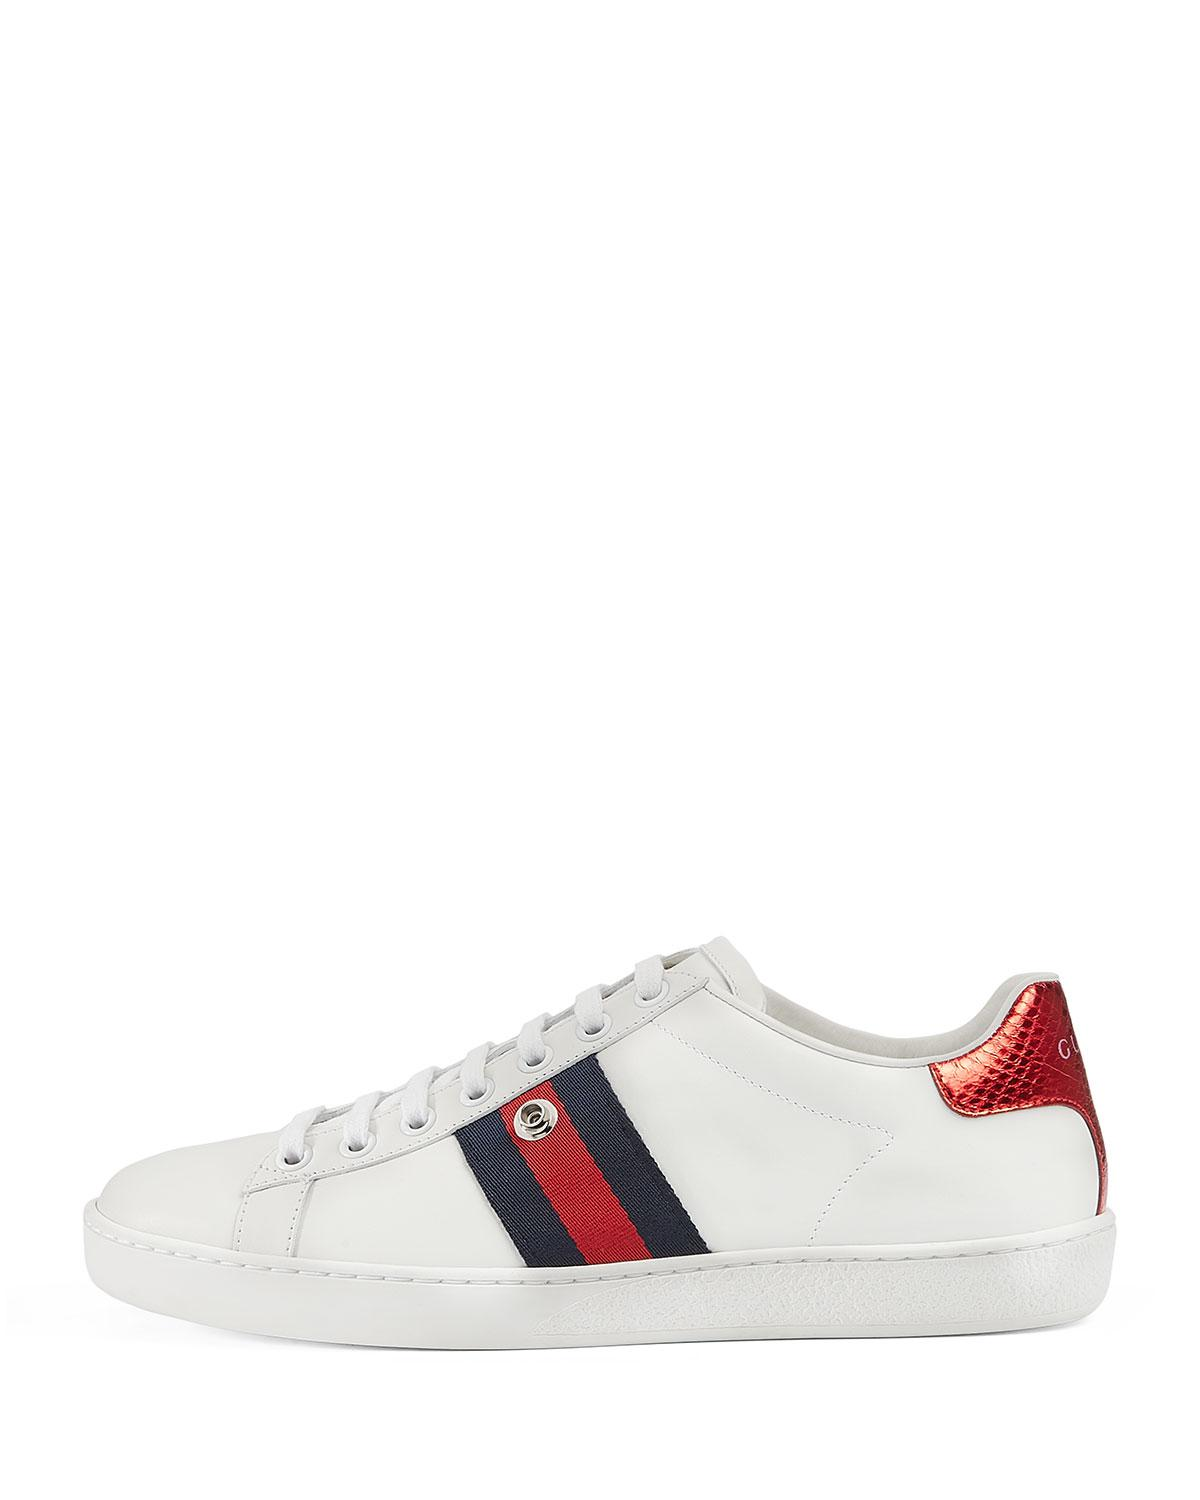 54373e2d4 Gucci New Ace Panther Low-top Sneakers in White for Men - Lyst